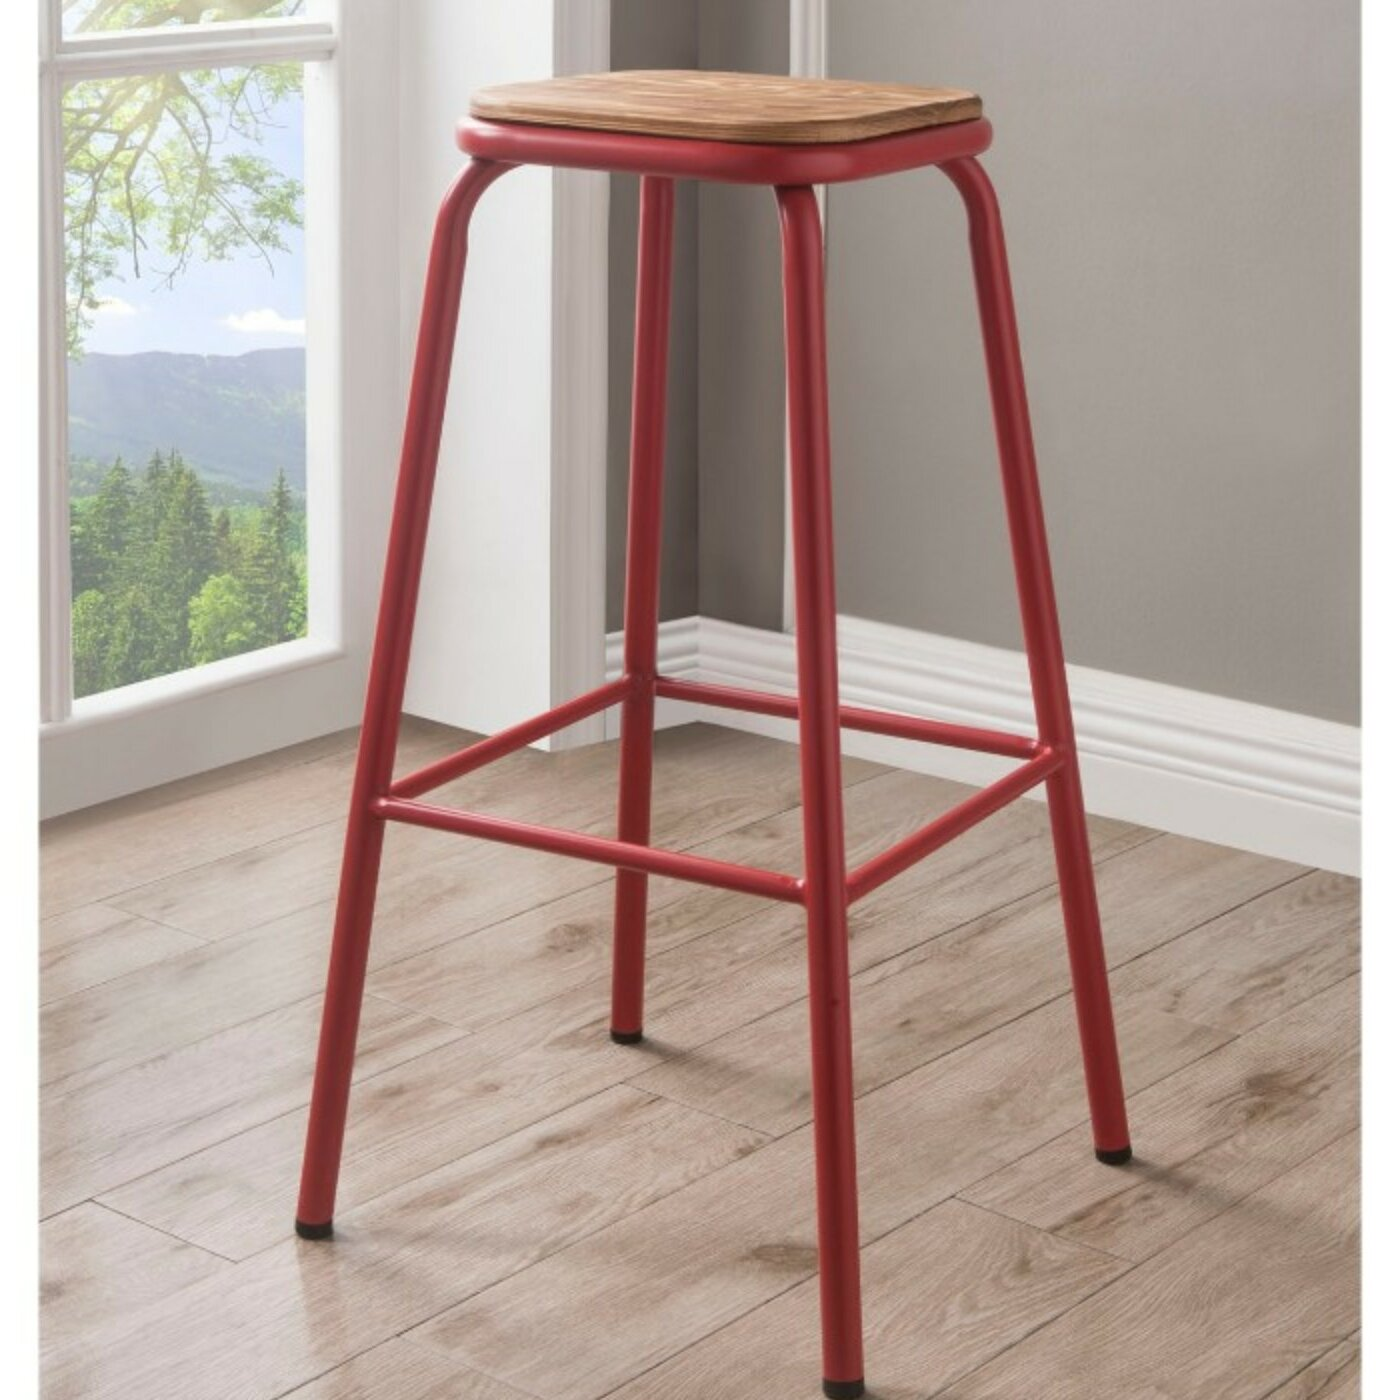 Swell Camara Industrial Metal Frame Wooden Bar Stool Evergreenethics Interior Chair Design Evergreenethicsorg